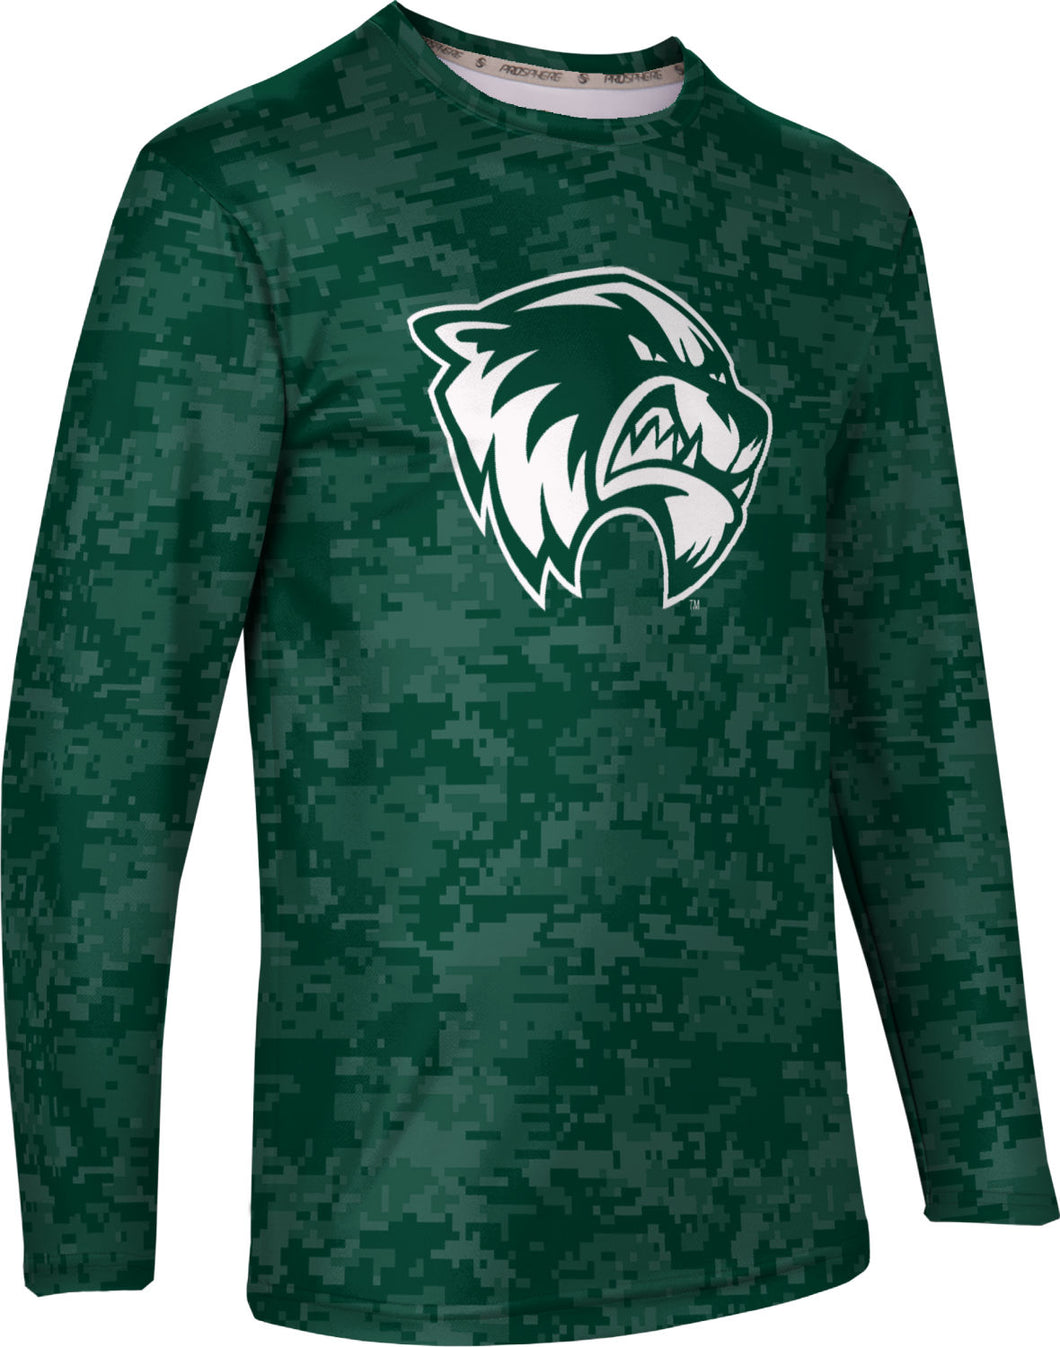 Utah Valley University: Men's Long Sleeve Tee - Digital